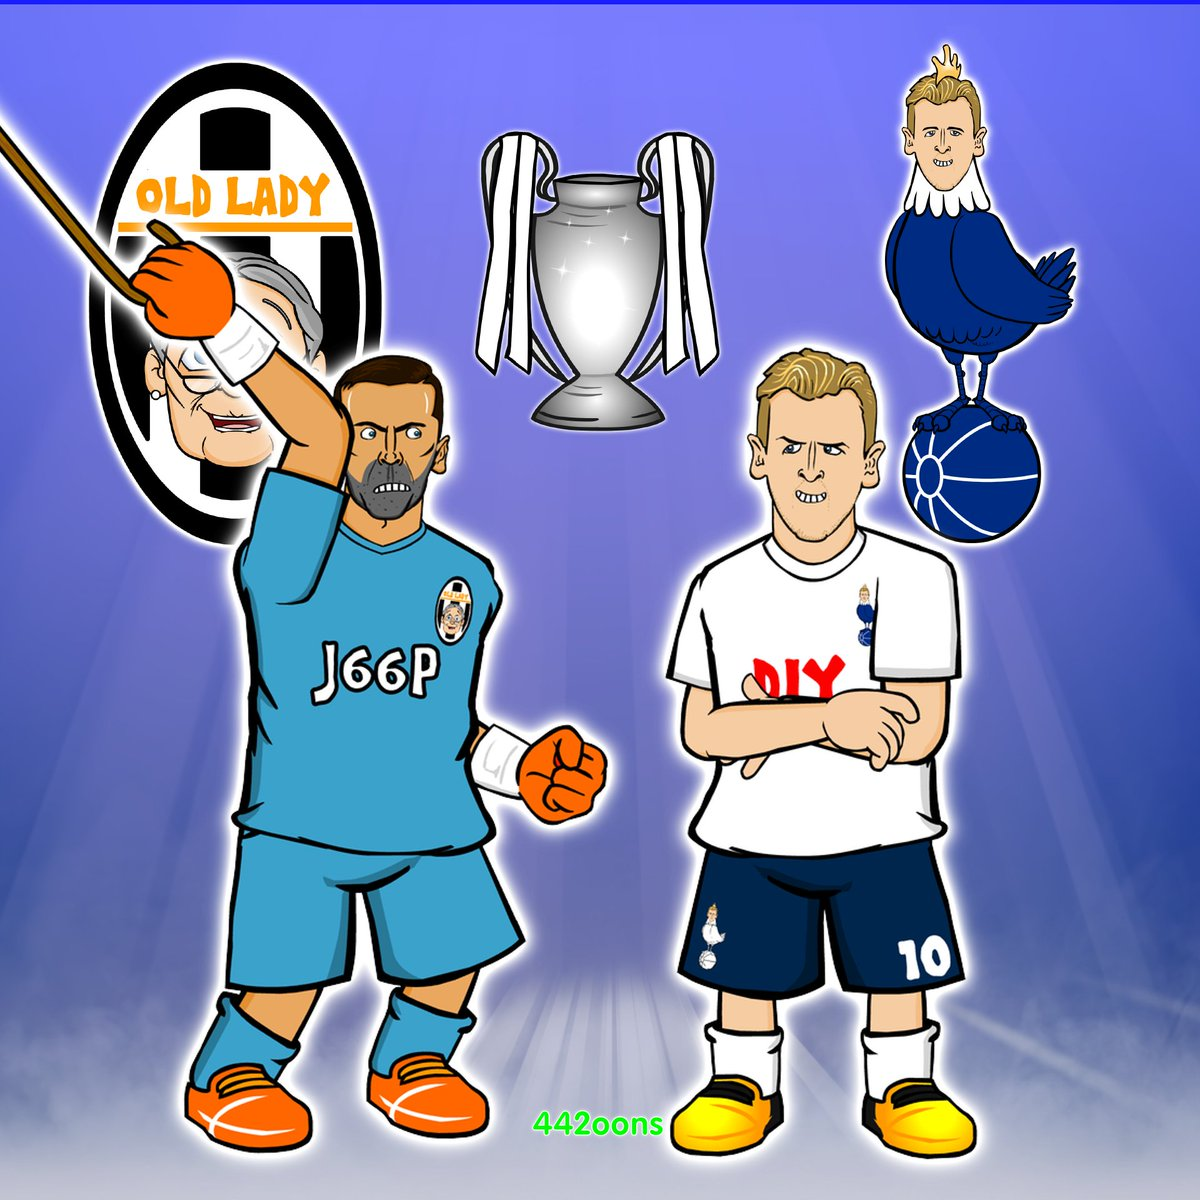 442oons on twitter juventus vs tottenham who s going to